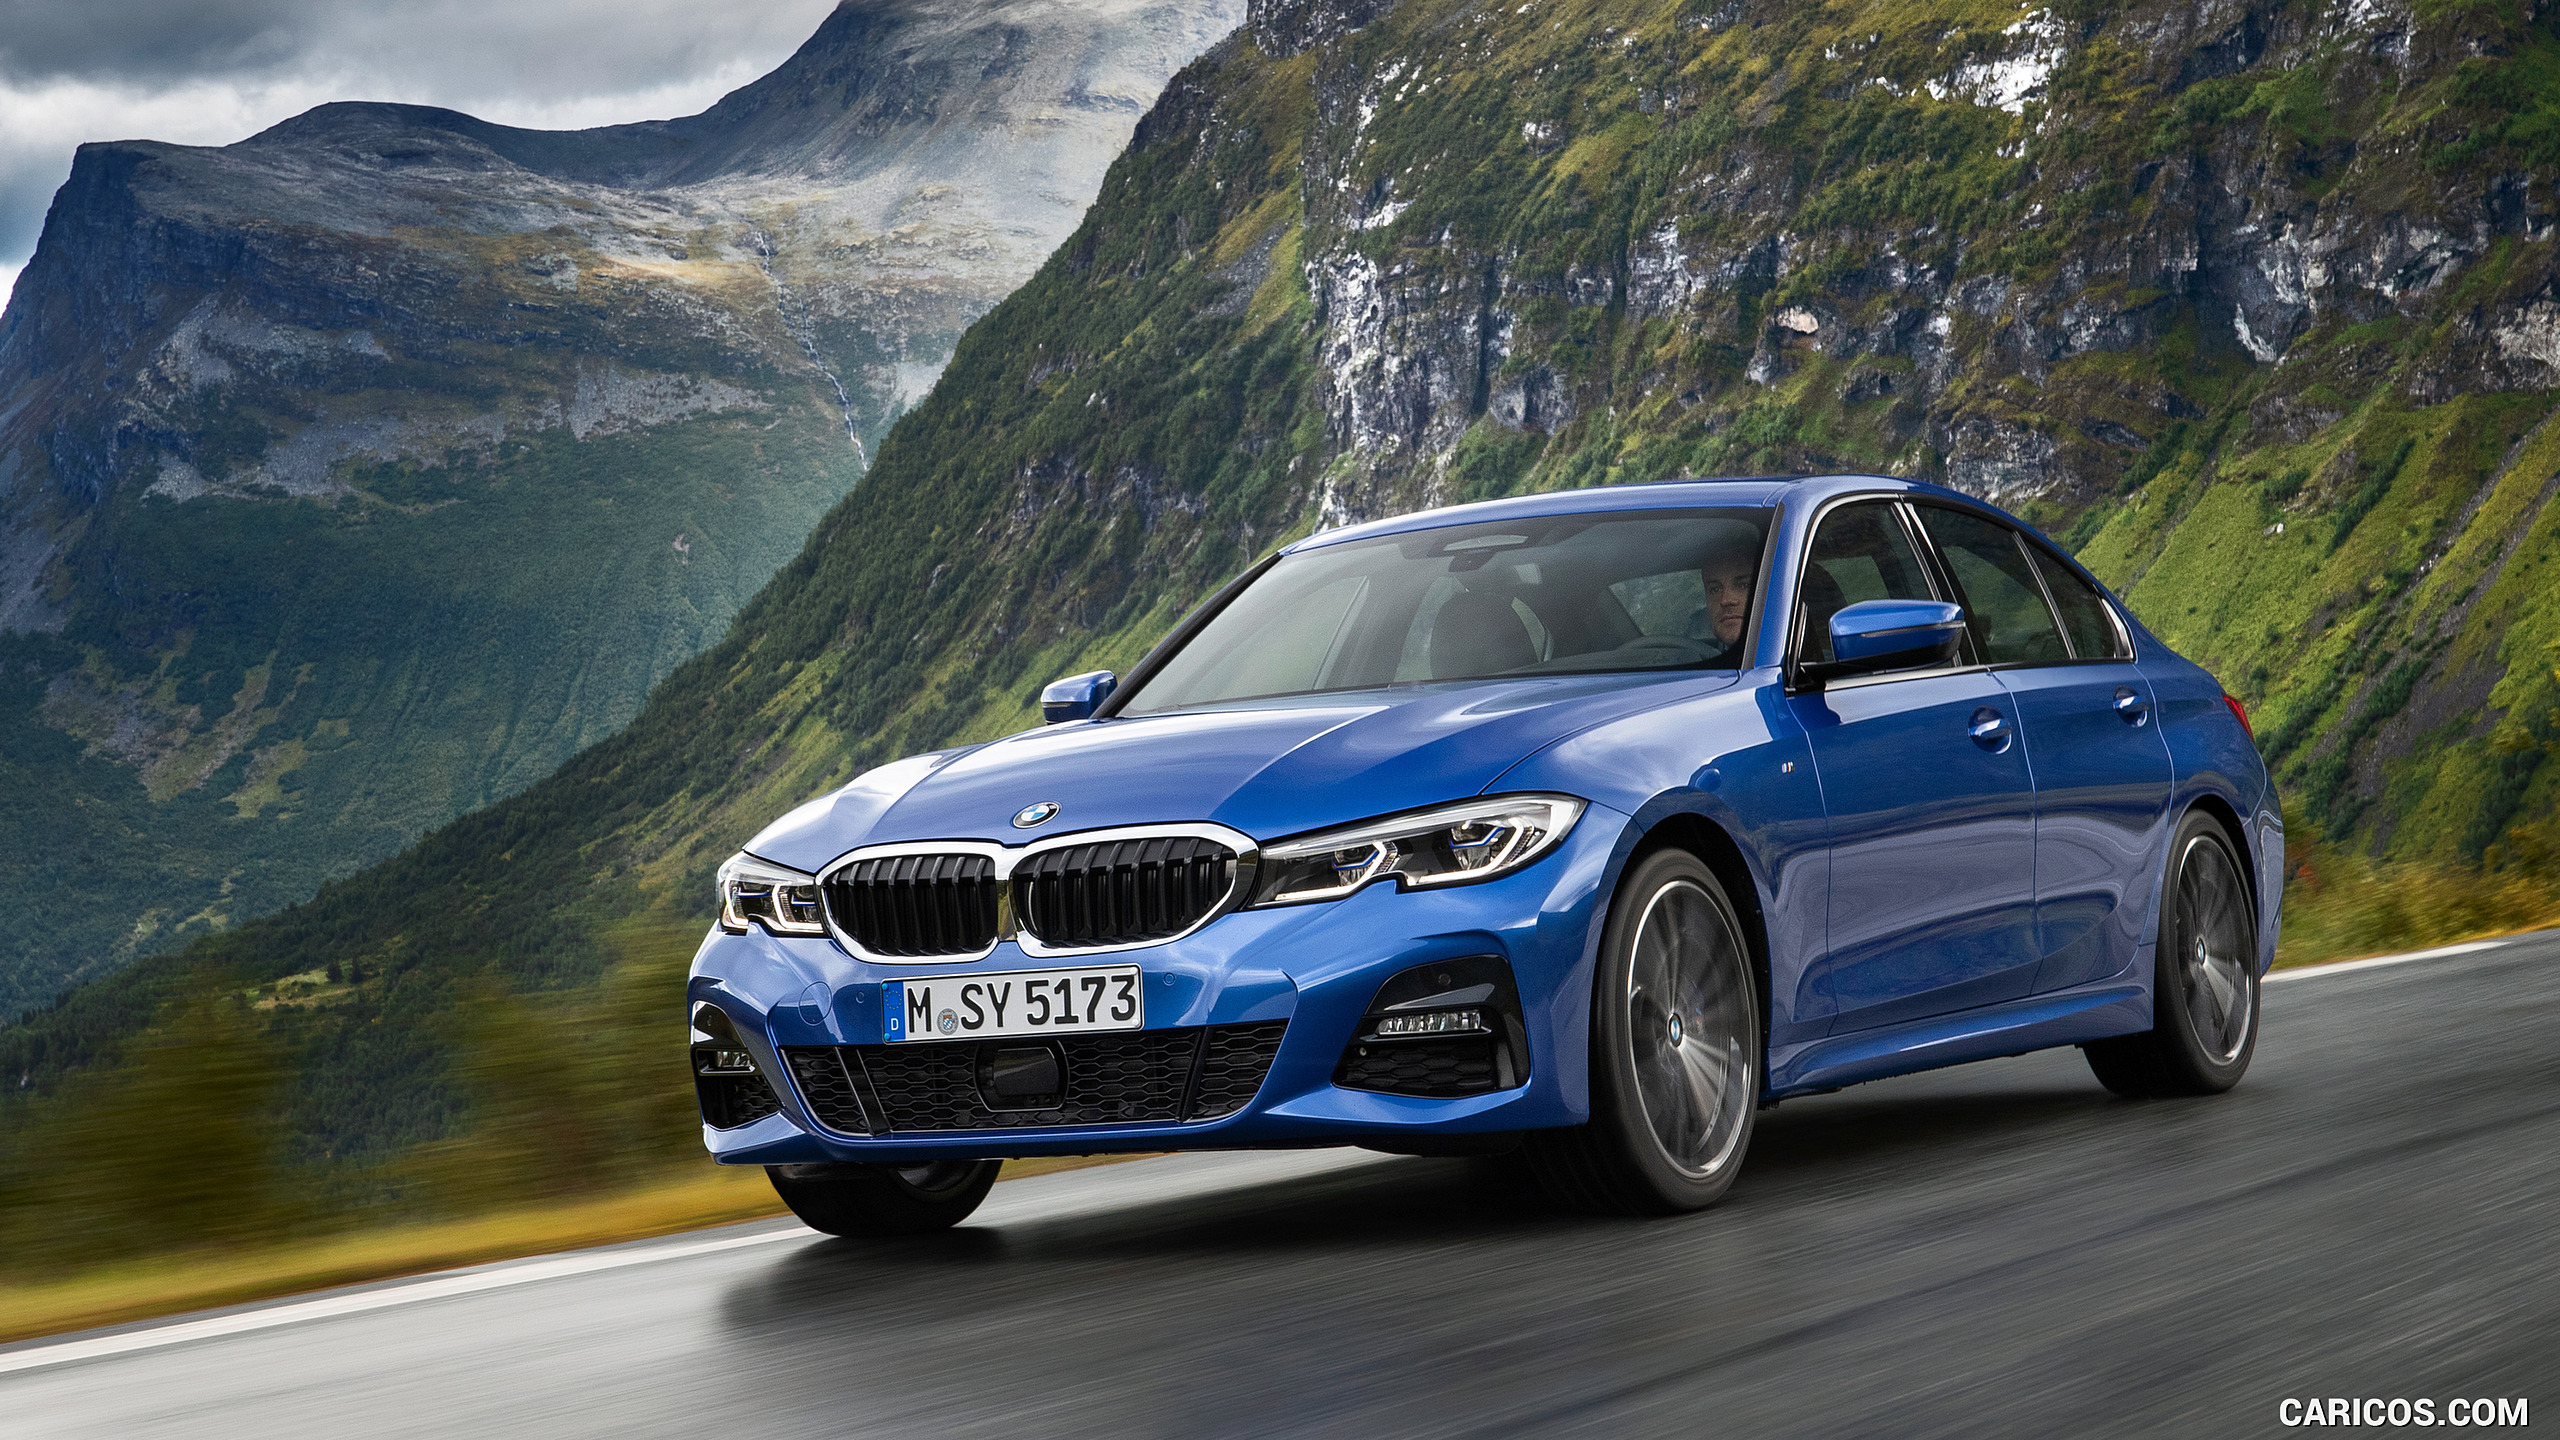 BMW 3 Series 2019 Wallpapers - Wallpaper Cave